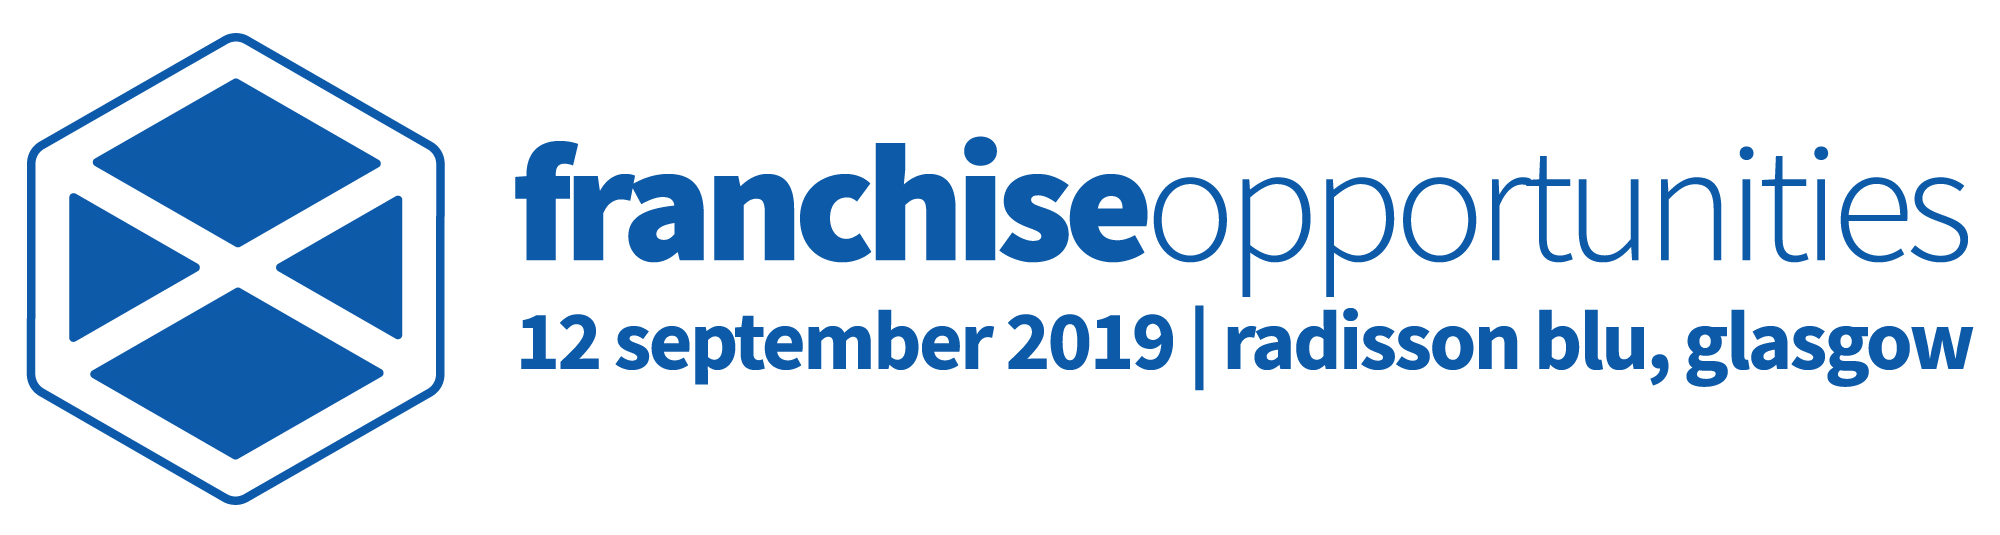 Franchise Opportunities Scotland 2019